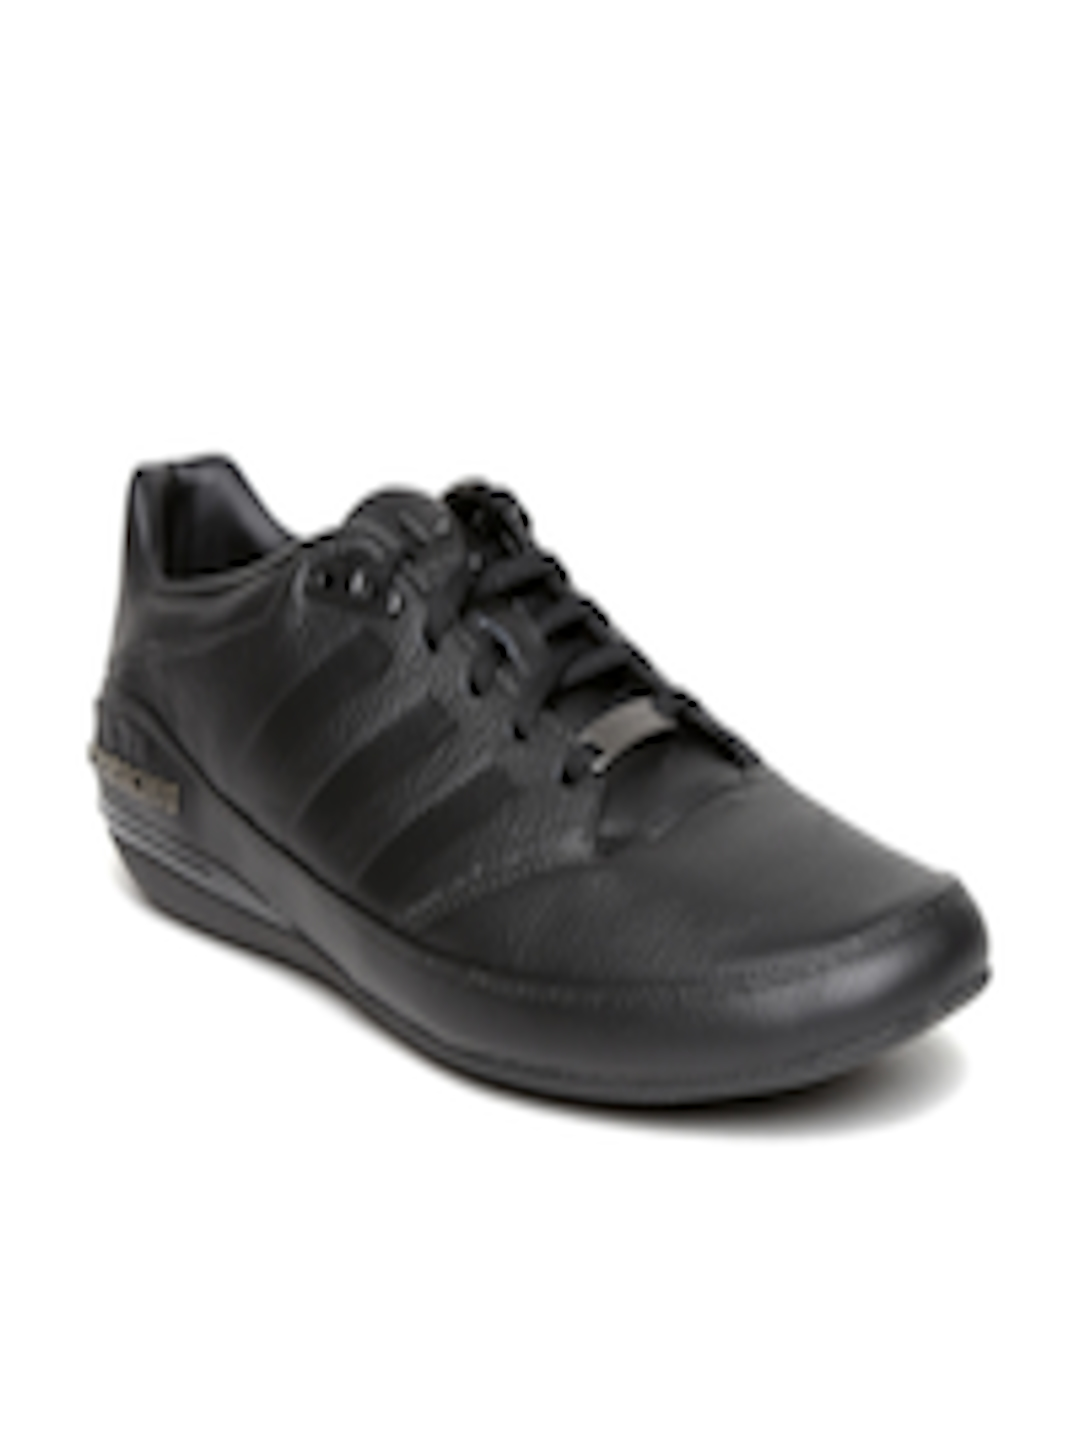 save off 76e65 d8bcd Buy Porsche Design By ADIDAS Originals Men Black Leather Casual Shoes -  Casual Shoes for Men 979952   Myntra